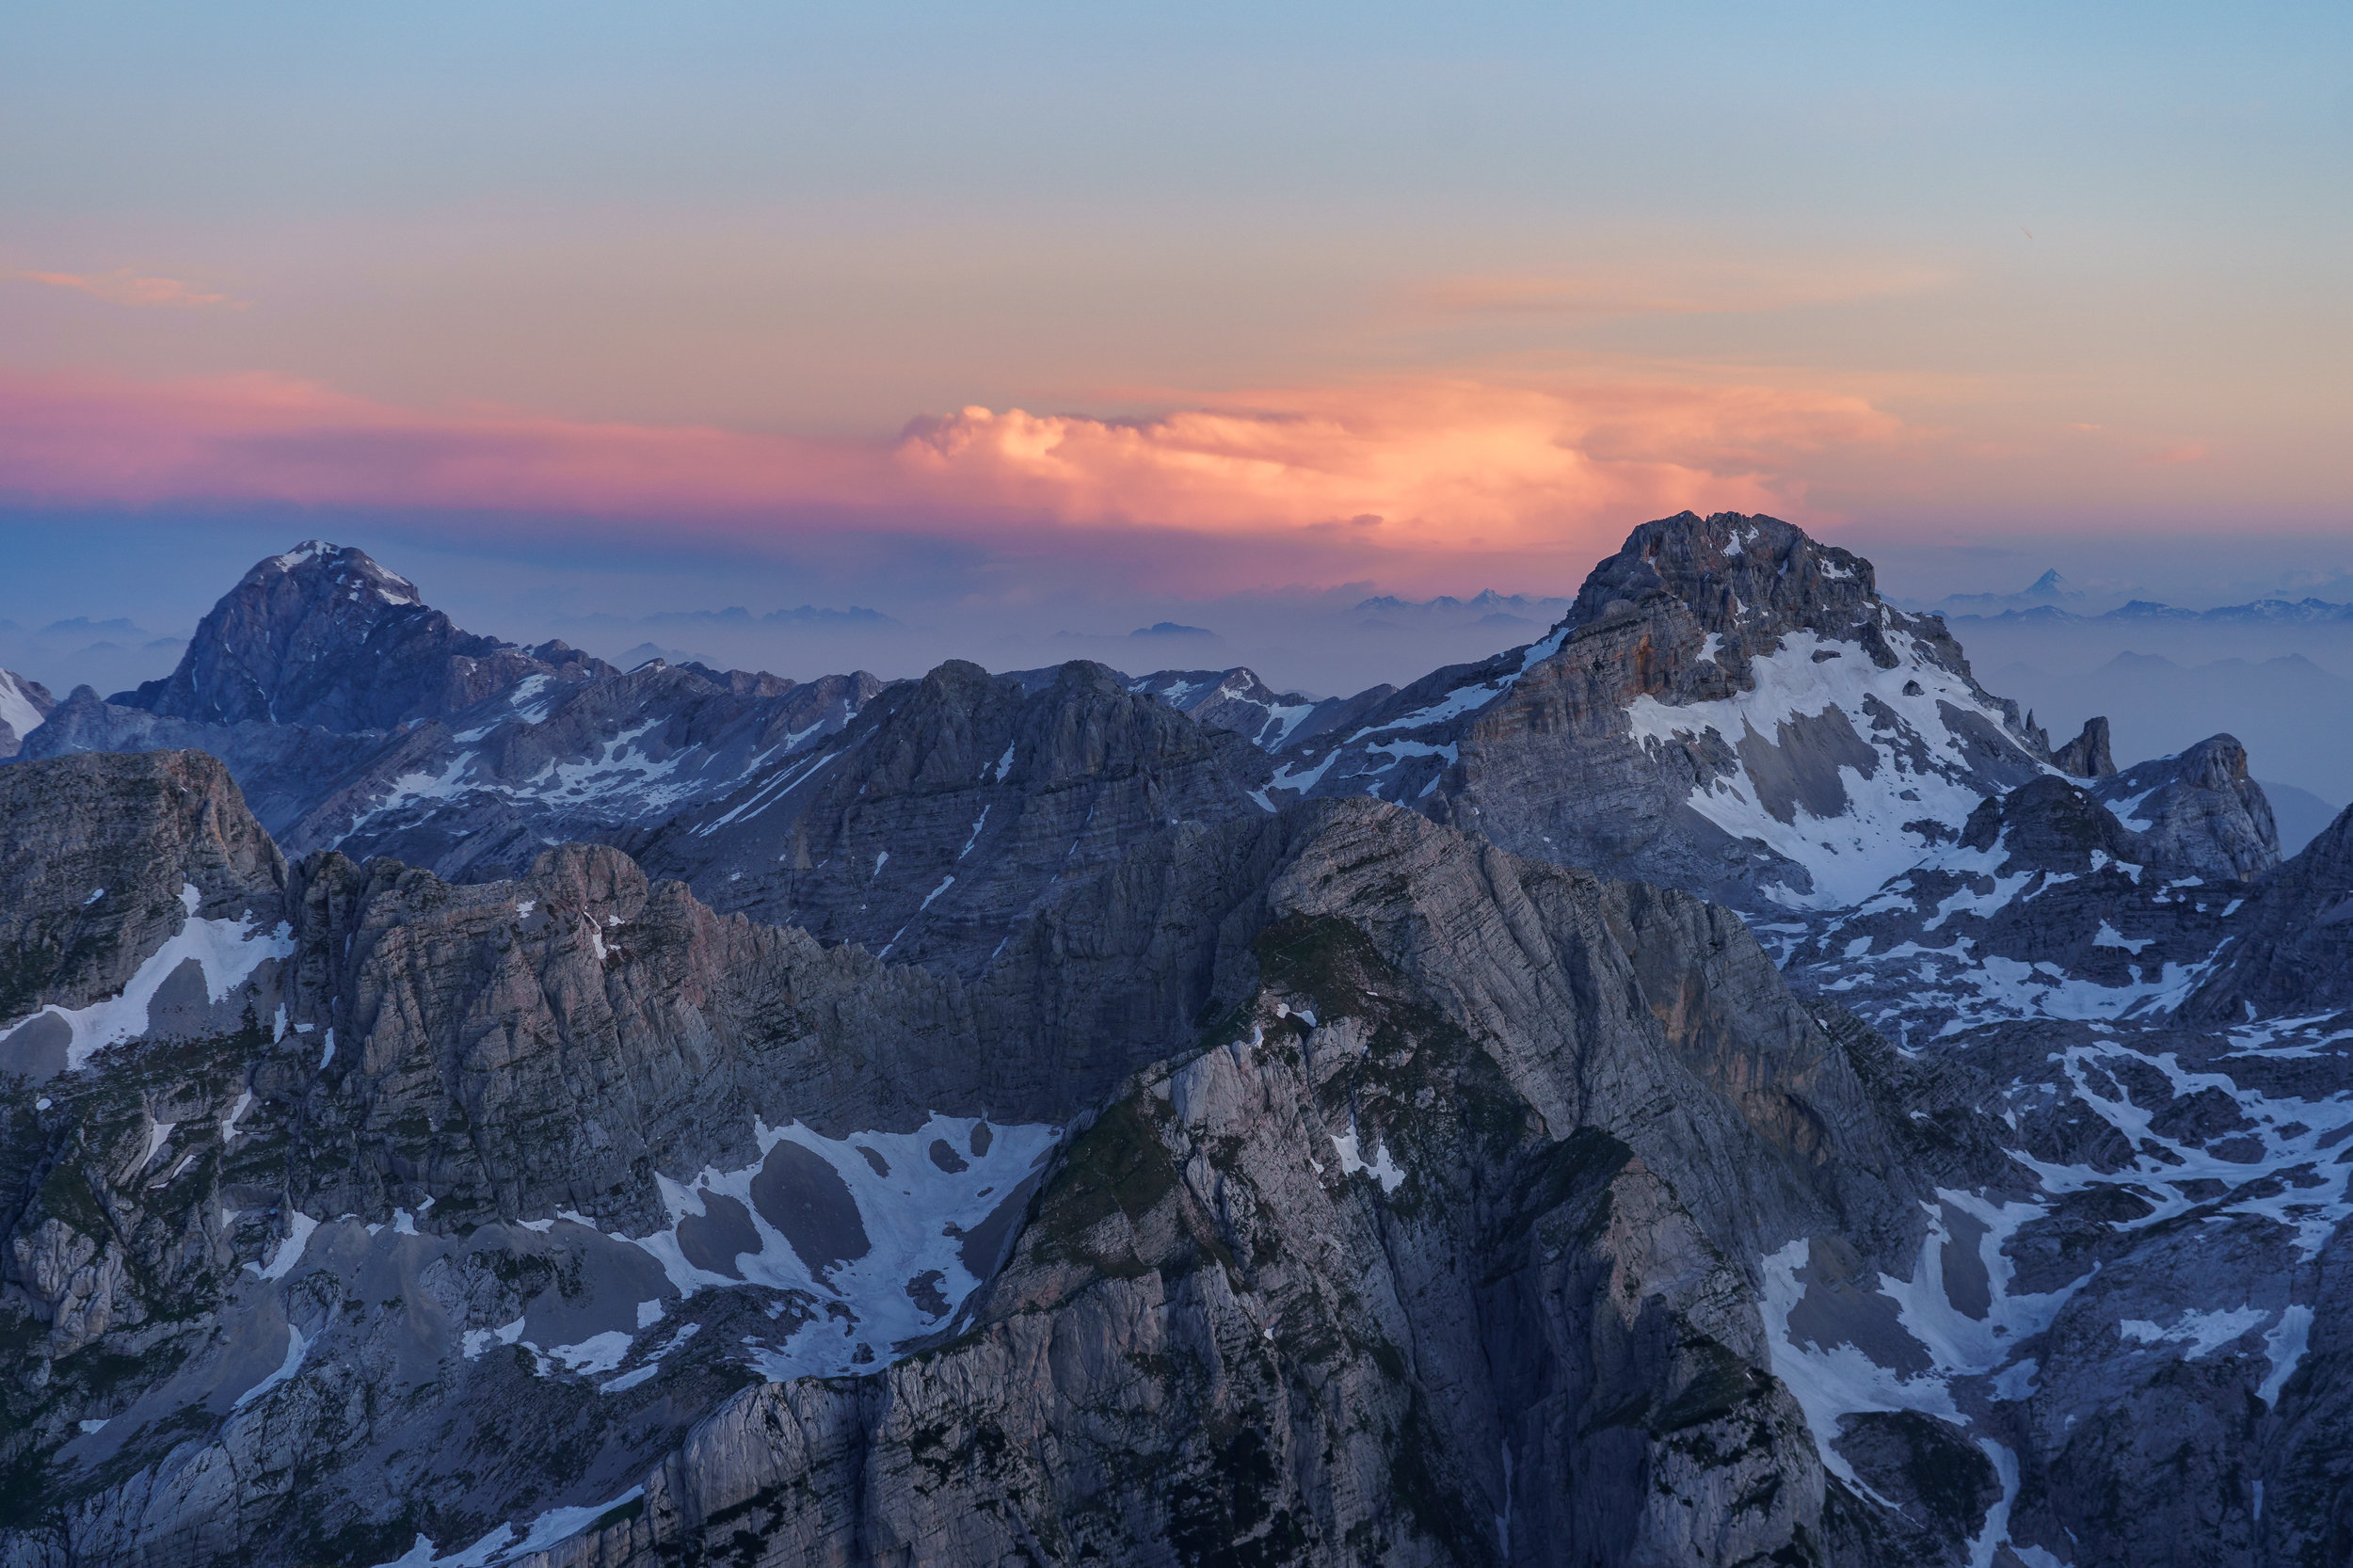 Mt. Mangart and Mt. Razor at dawn.